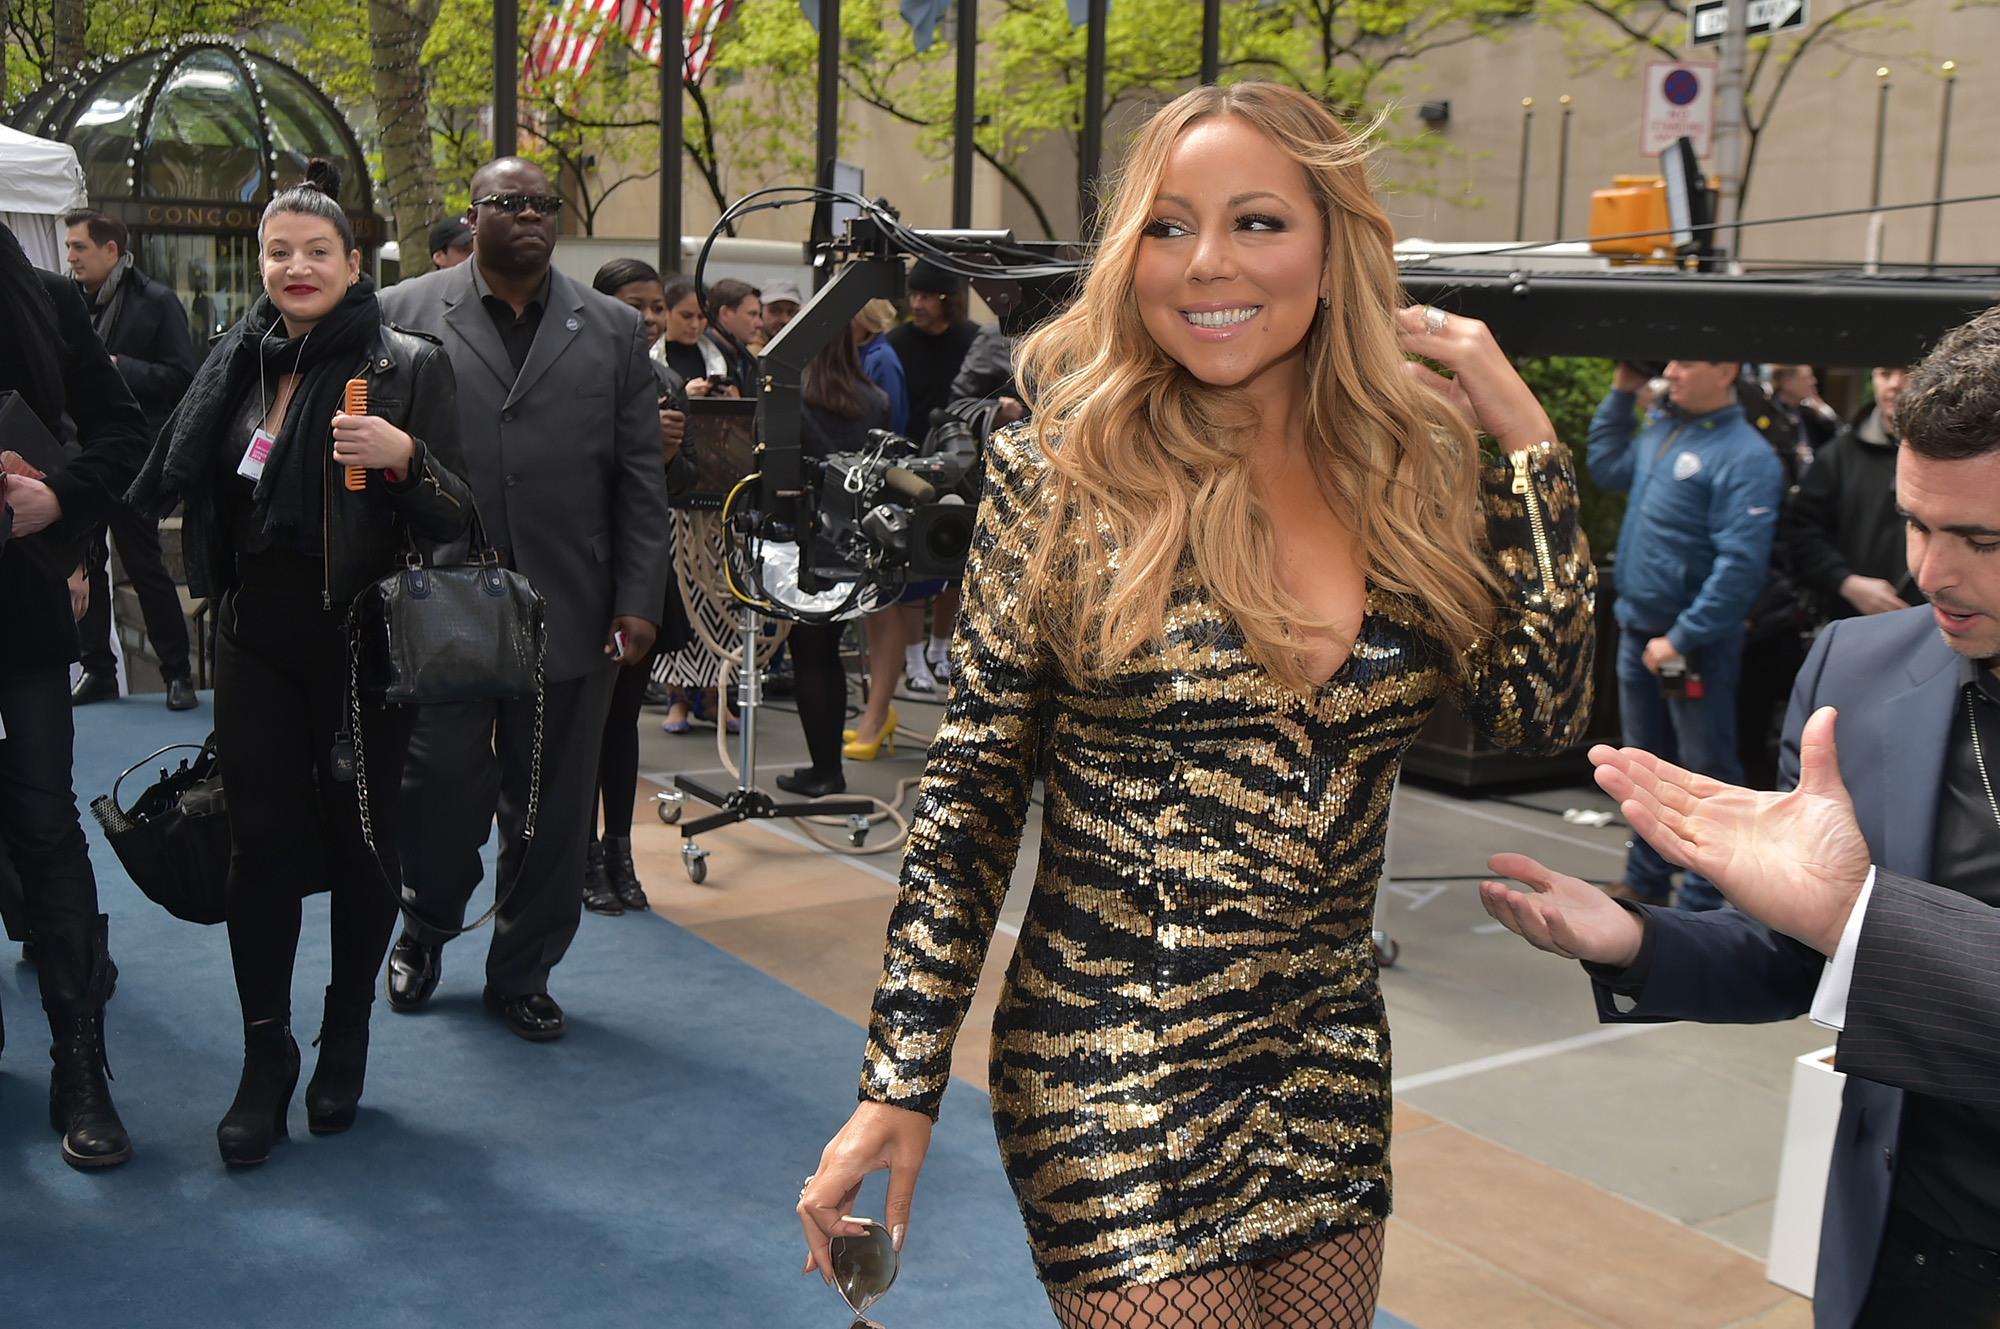 NBCUniversal Upfront in New York City on Monday, May 16, 2016 -- Pictured: Mariah Carey,  Mariah's World  on E! Entertainment -- (Photo by: Theo Wargo/NBCUniversal/NBCU Photo Bank via Getty Images)